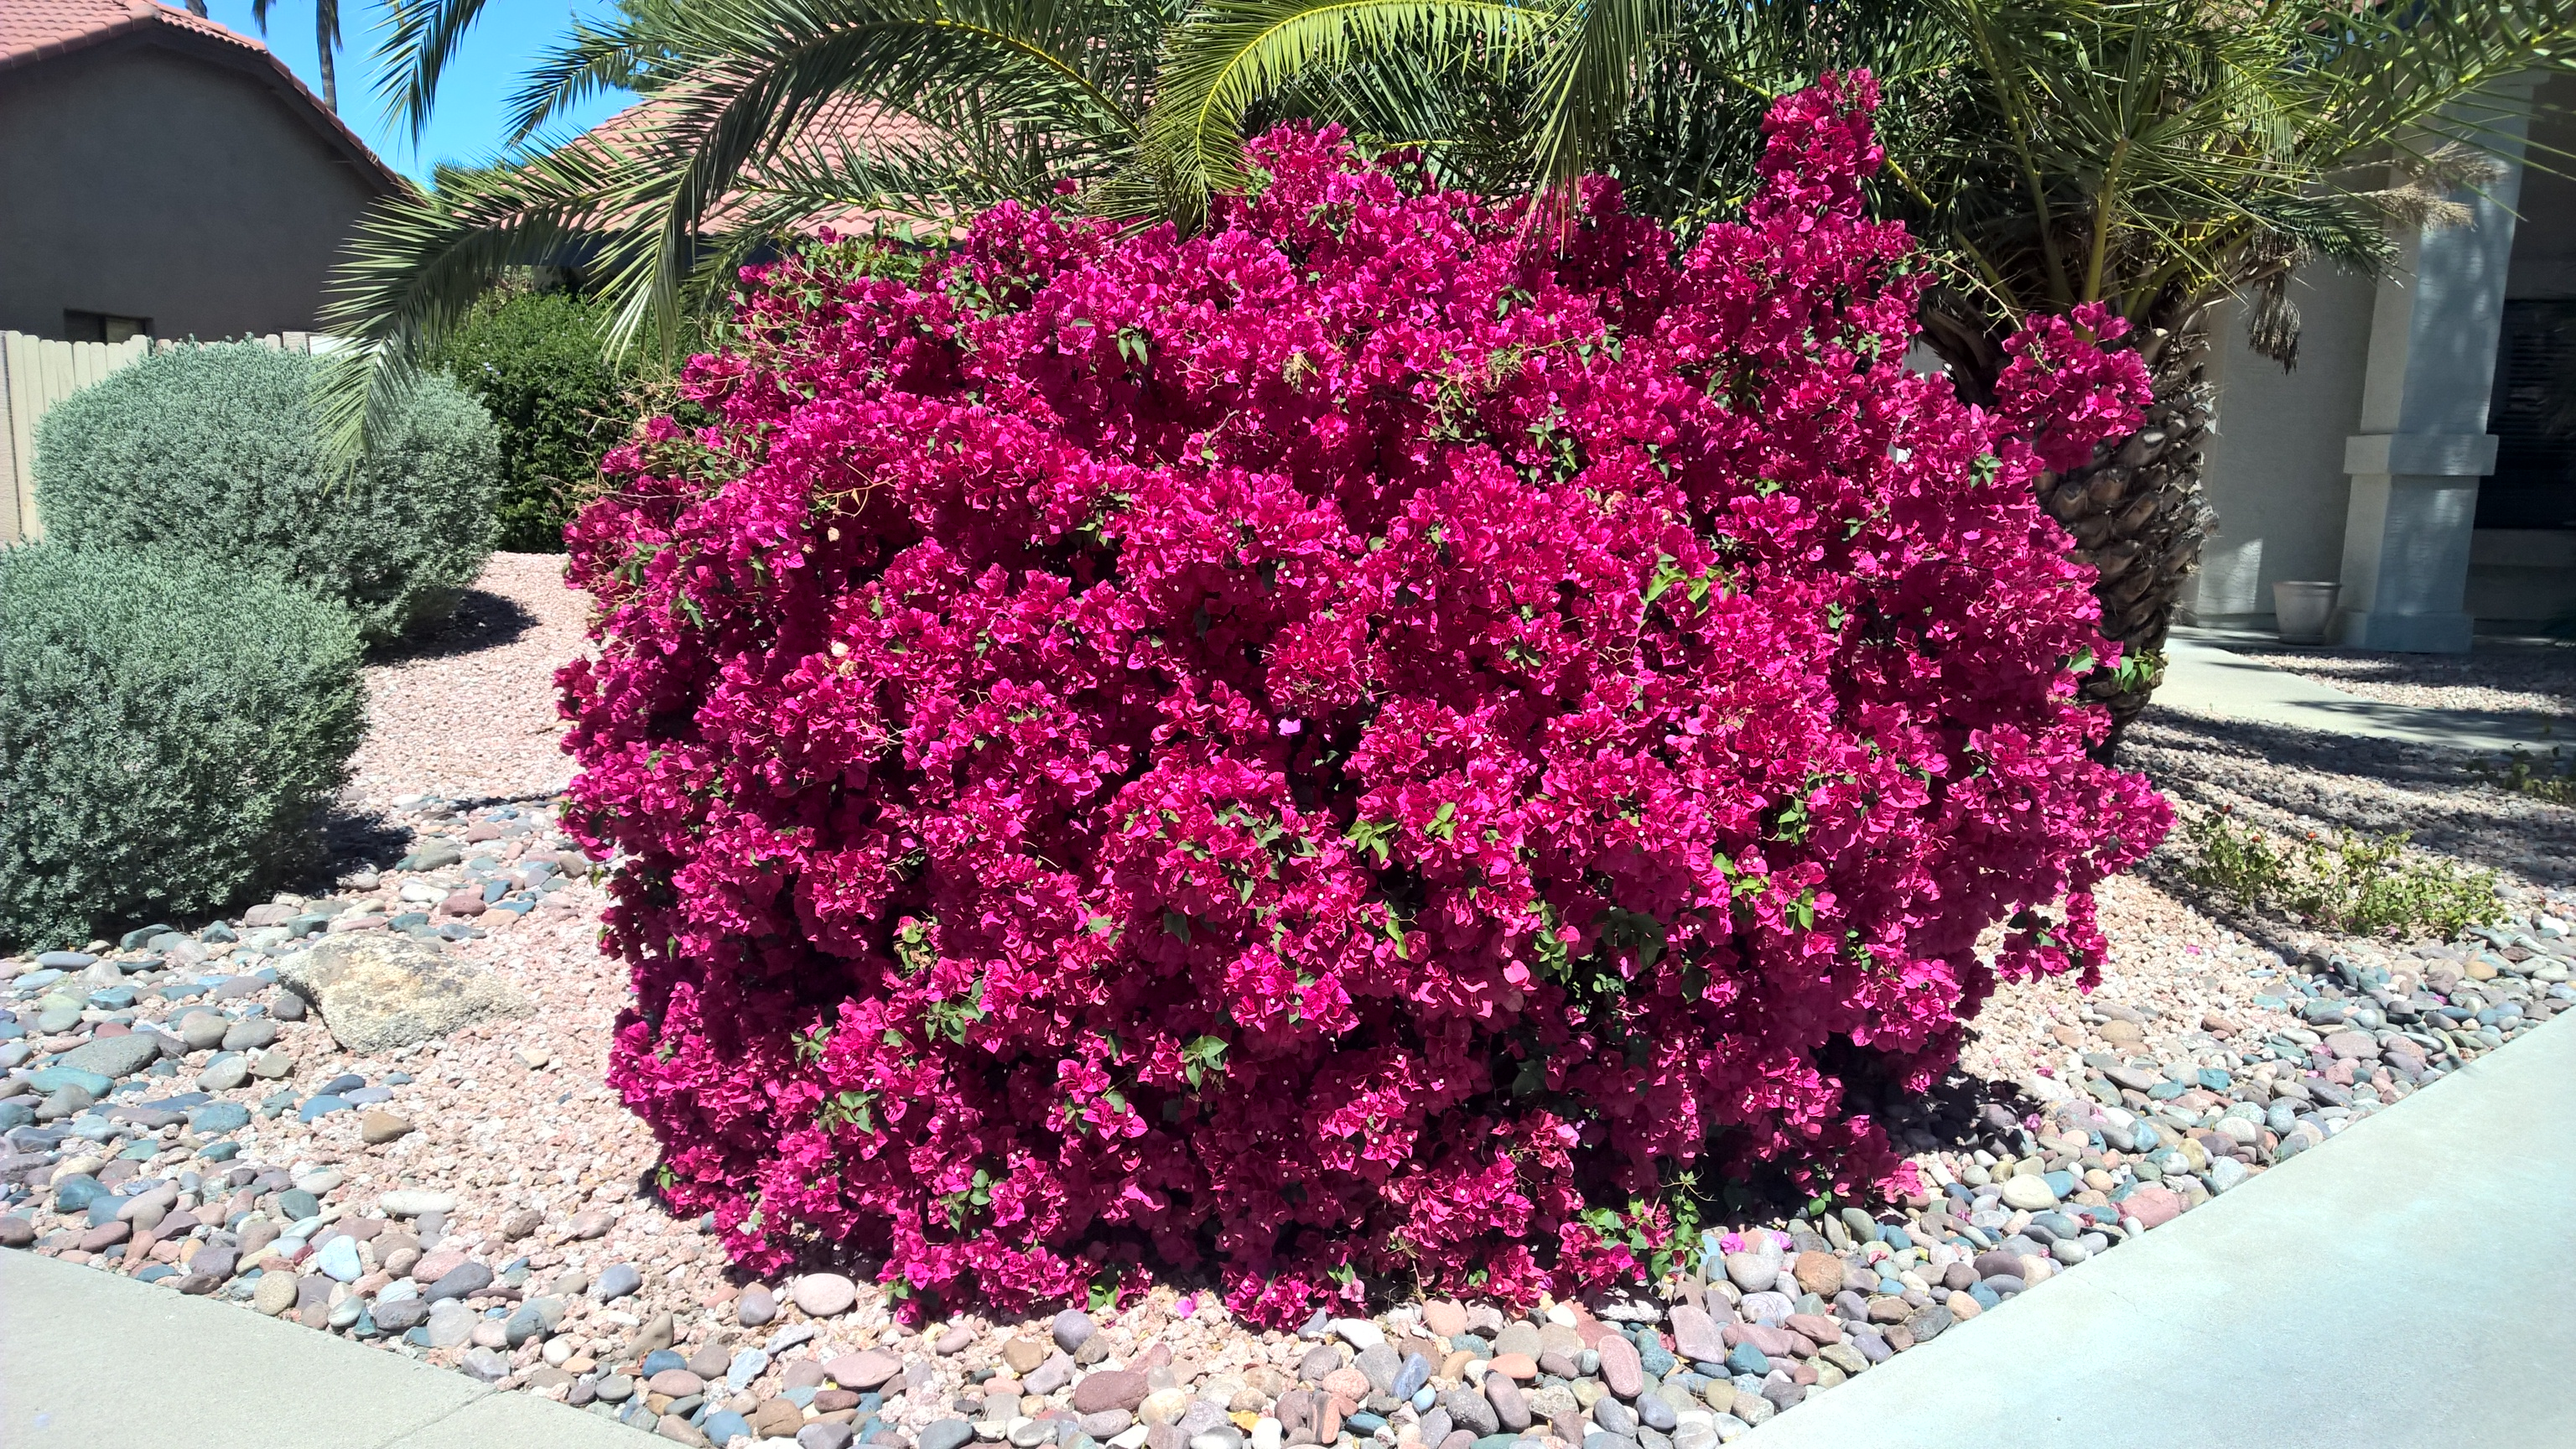 bougainvillea plant in front of a scottsdale home